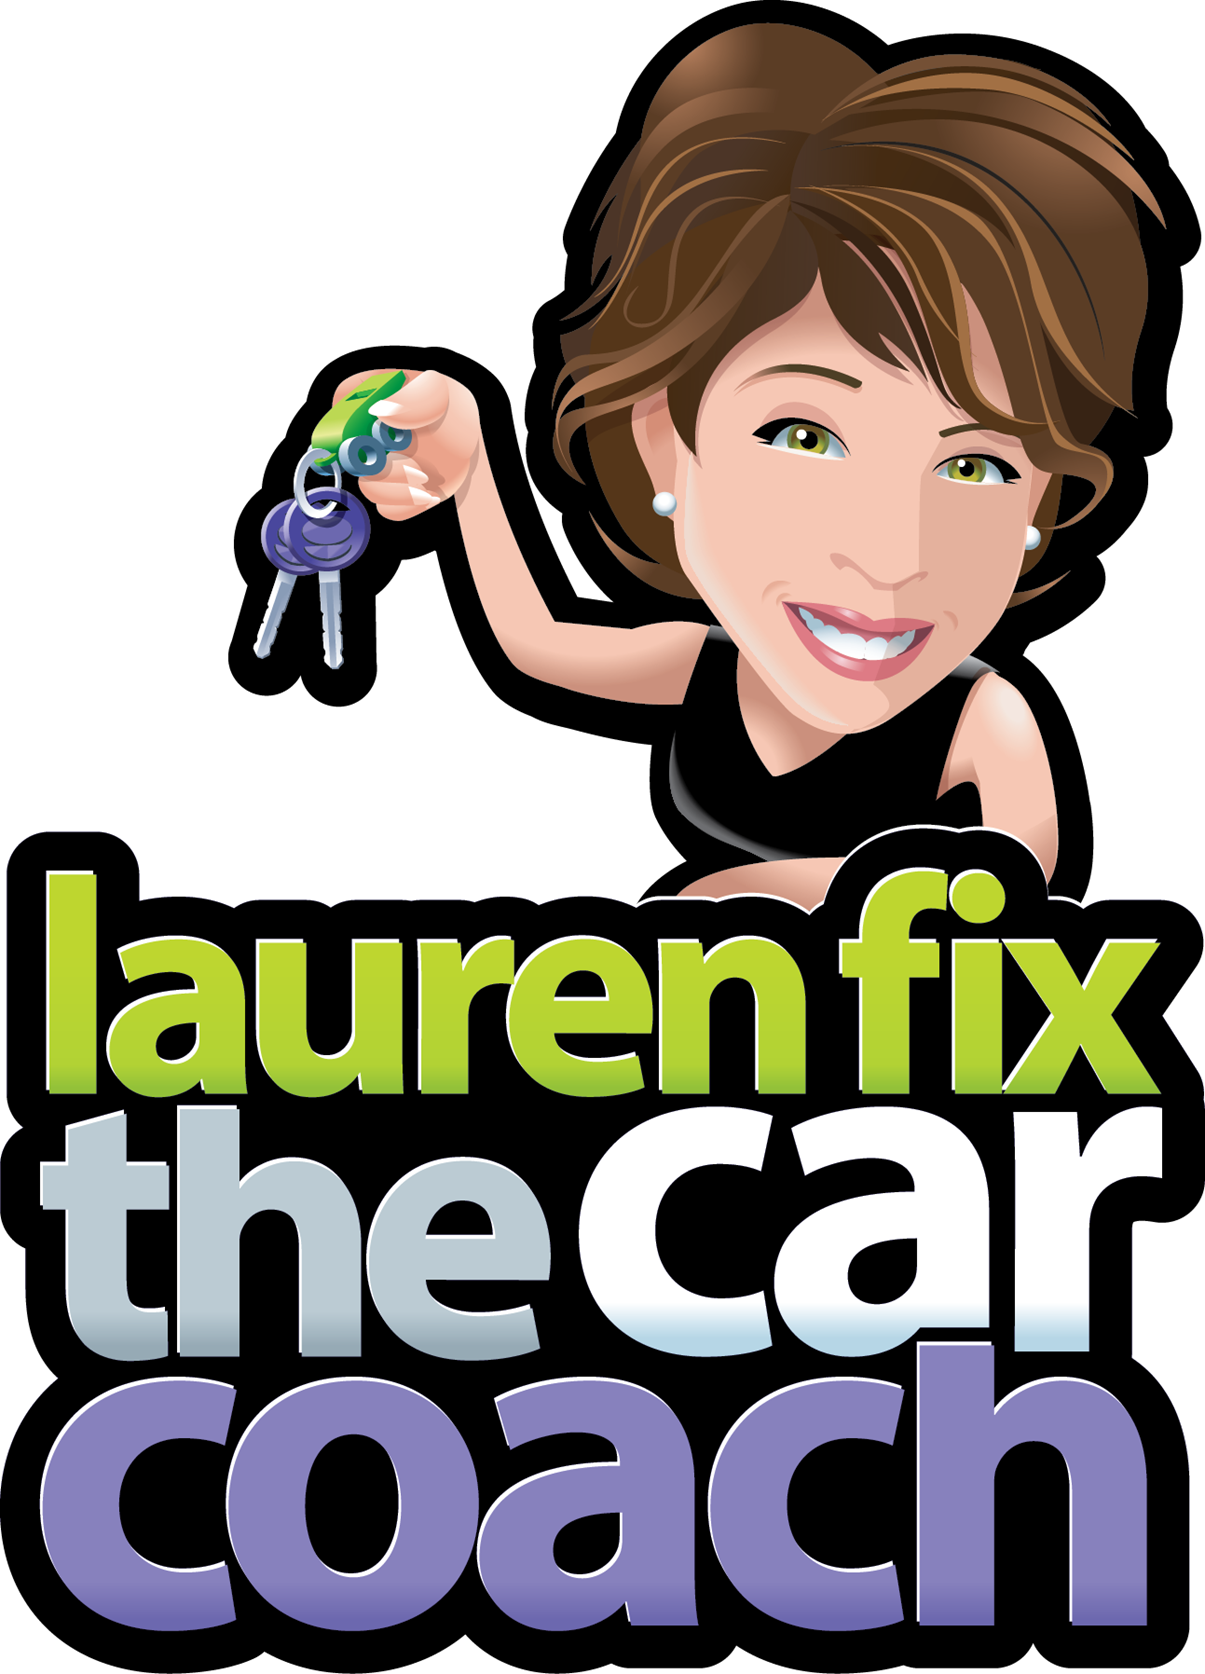 lauren fix car coach